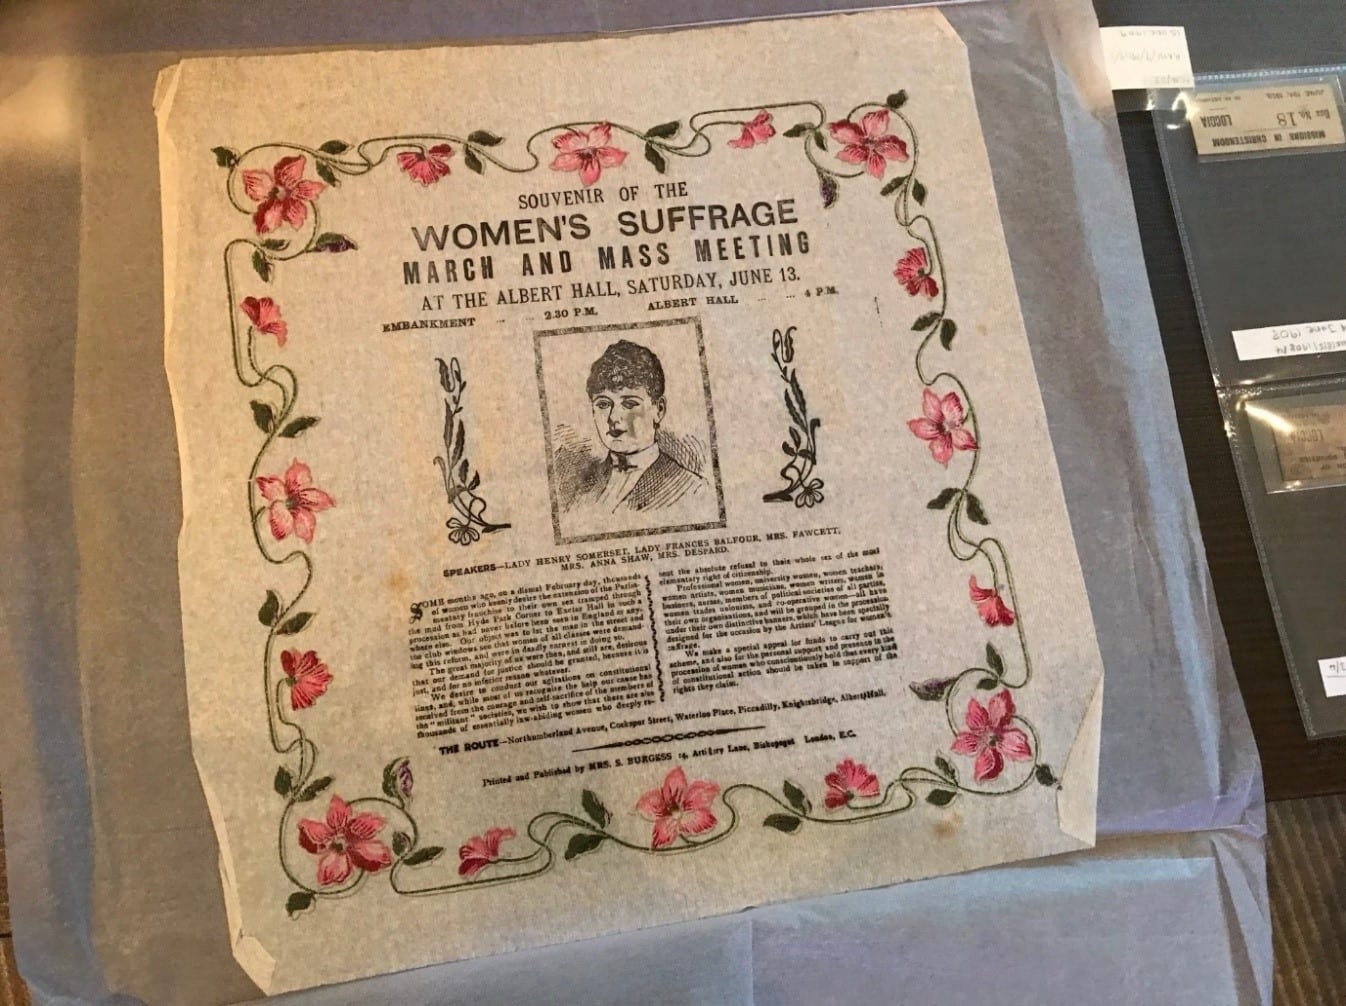 A souvenir handkerchief from the Women's Suffrage March and Mass Meeting